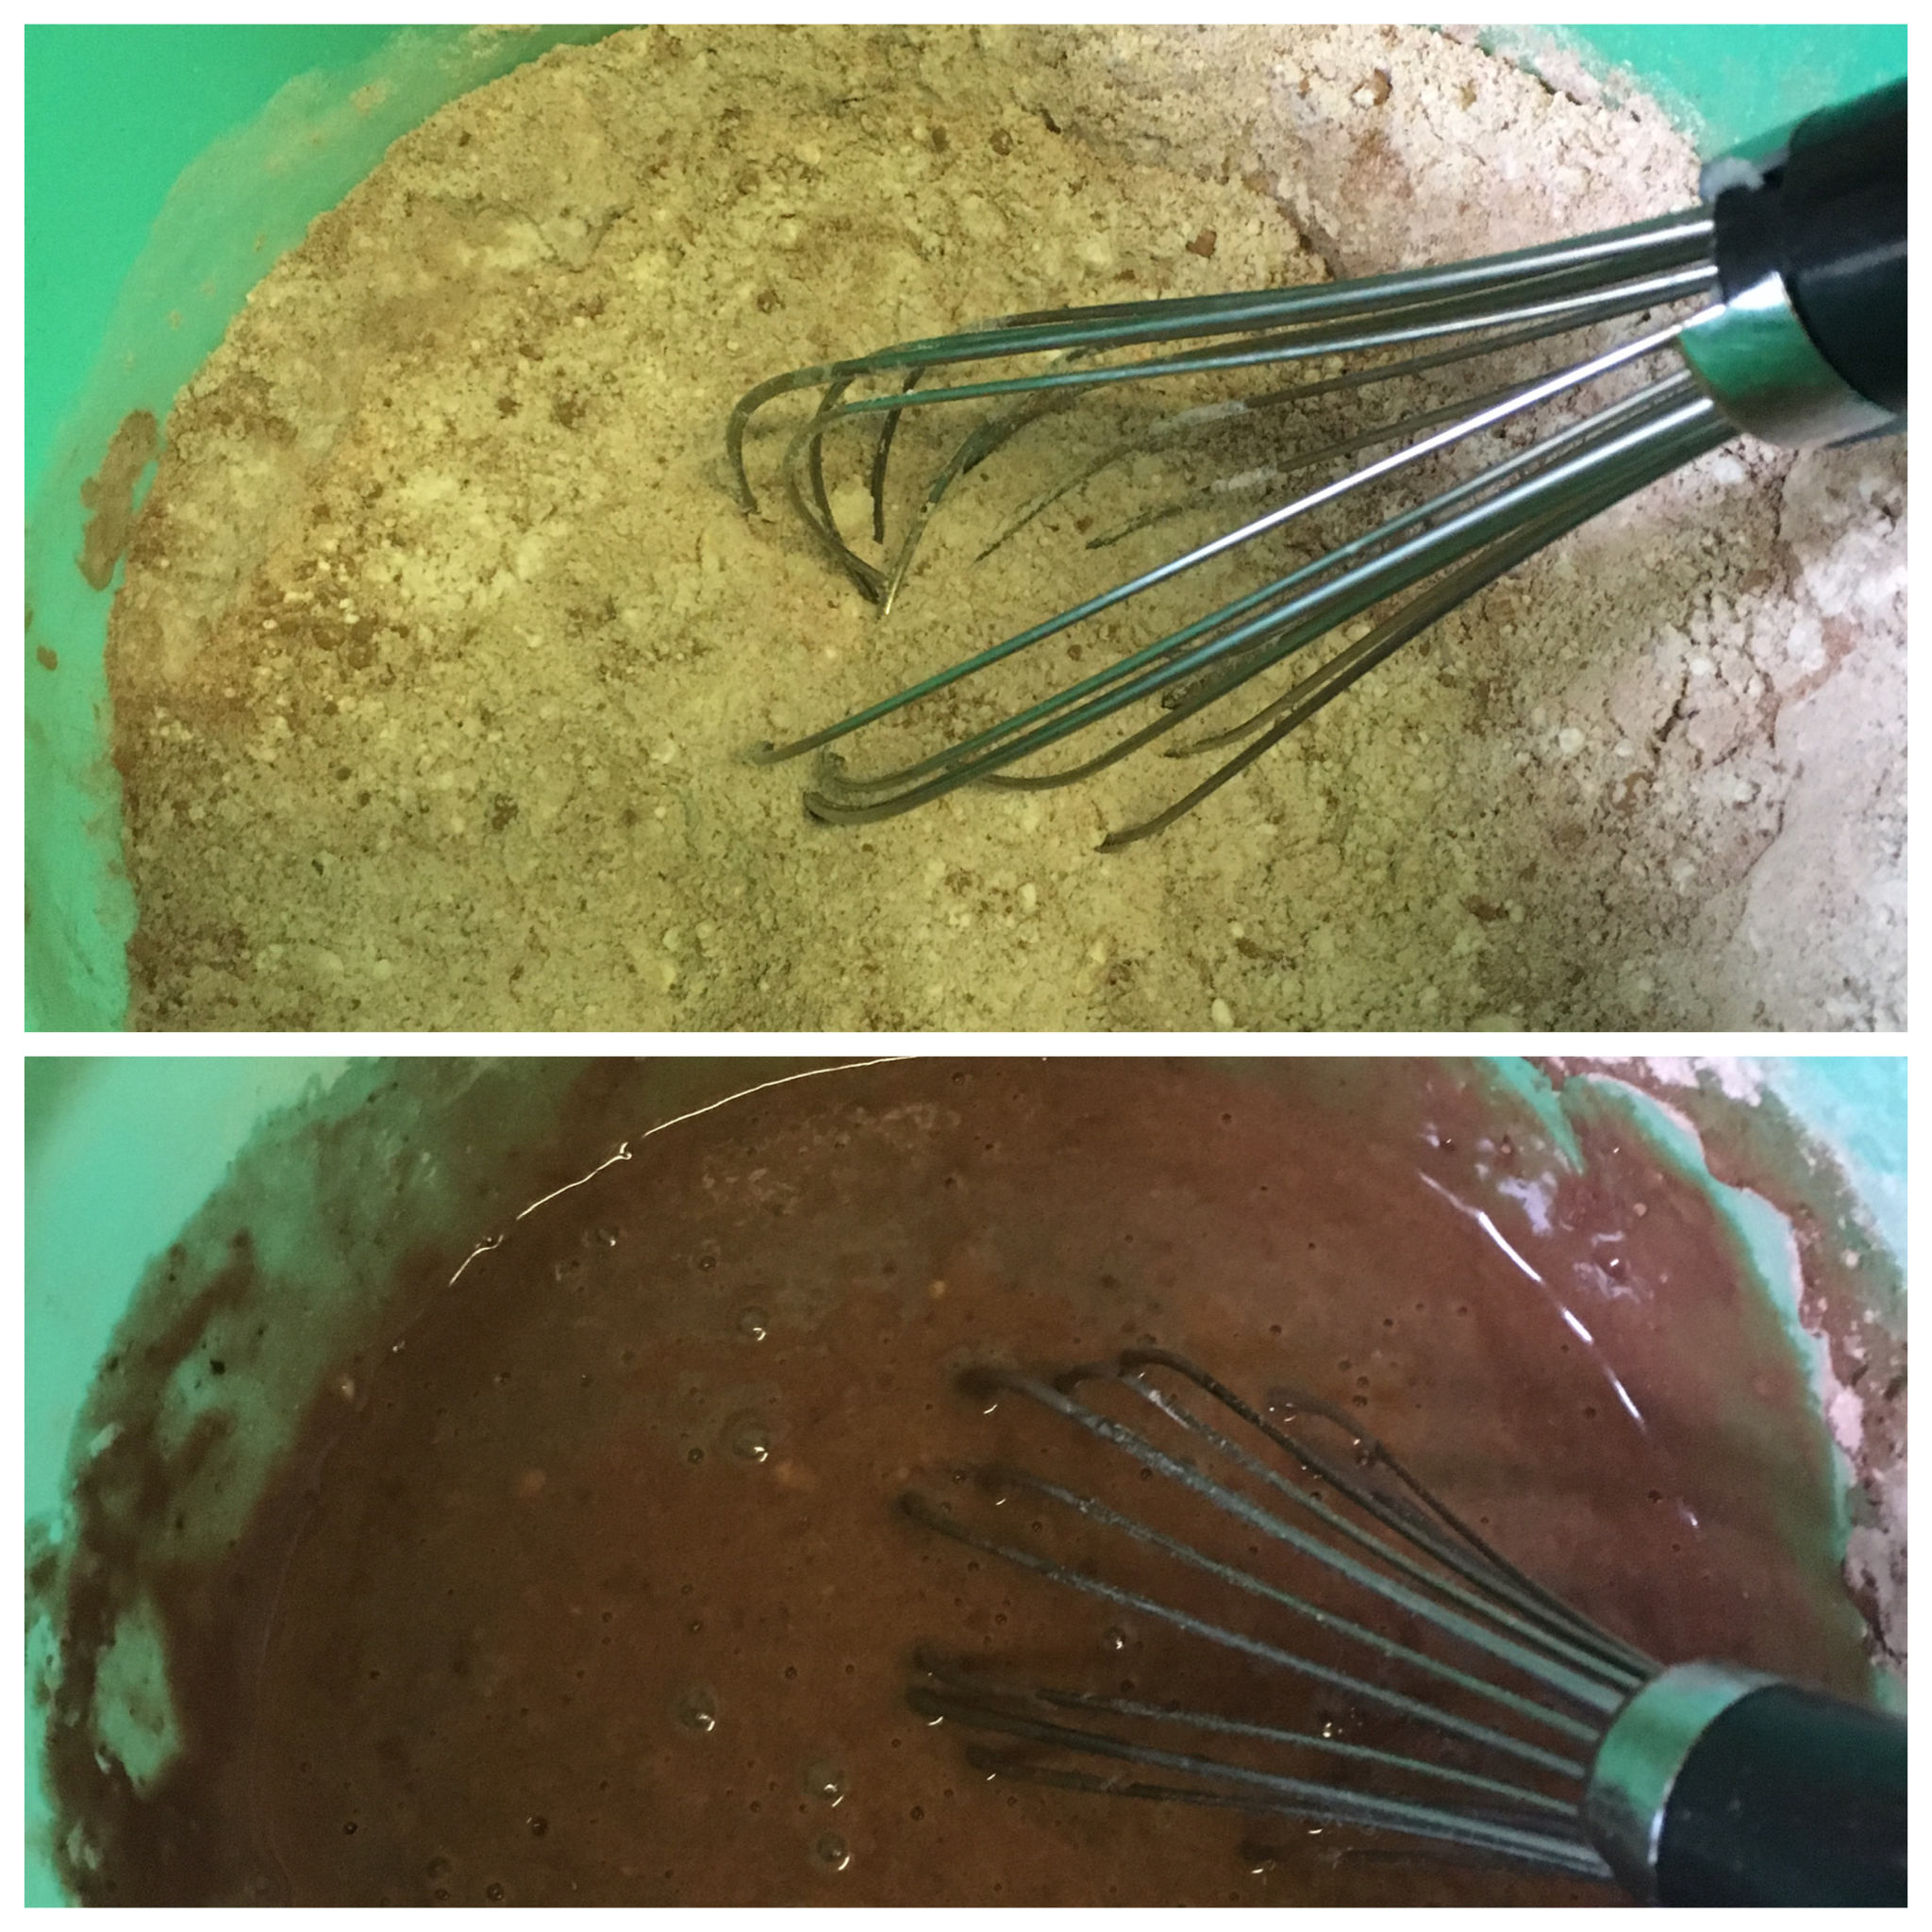 Top: All your Dry Ingredients Mixed; Bottom: After Wet Ingredients have been added